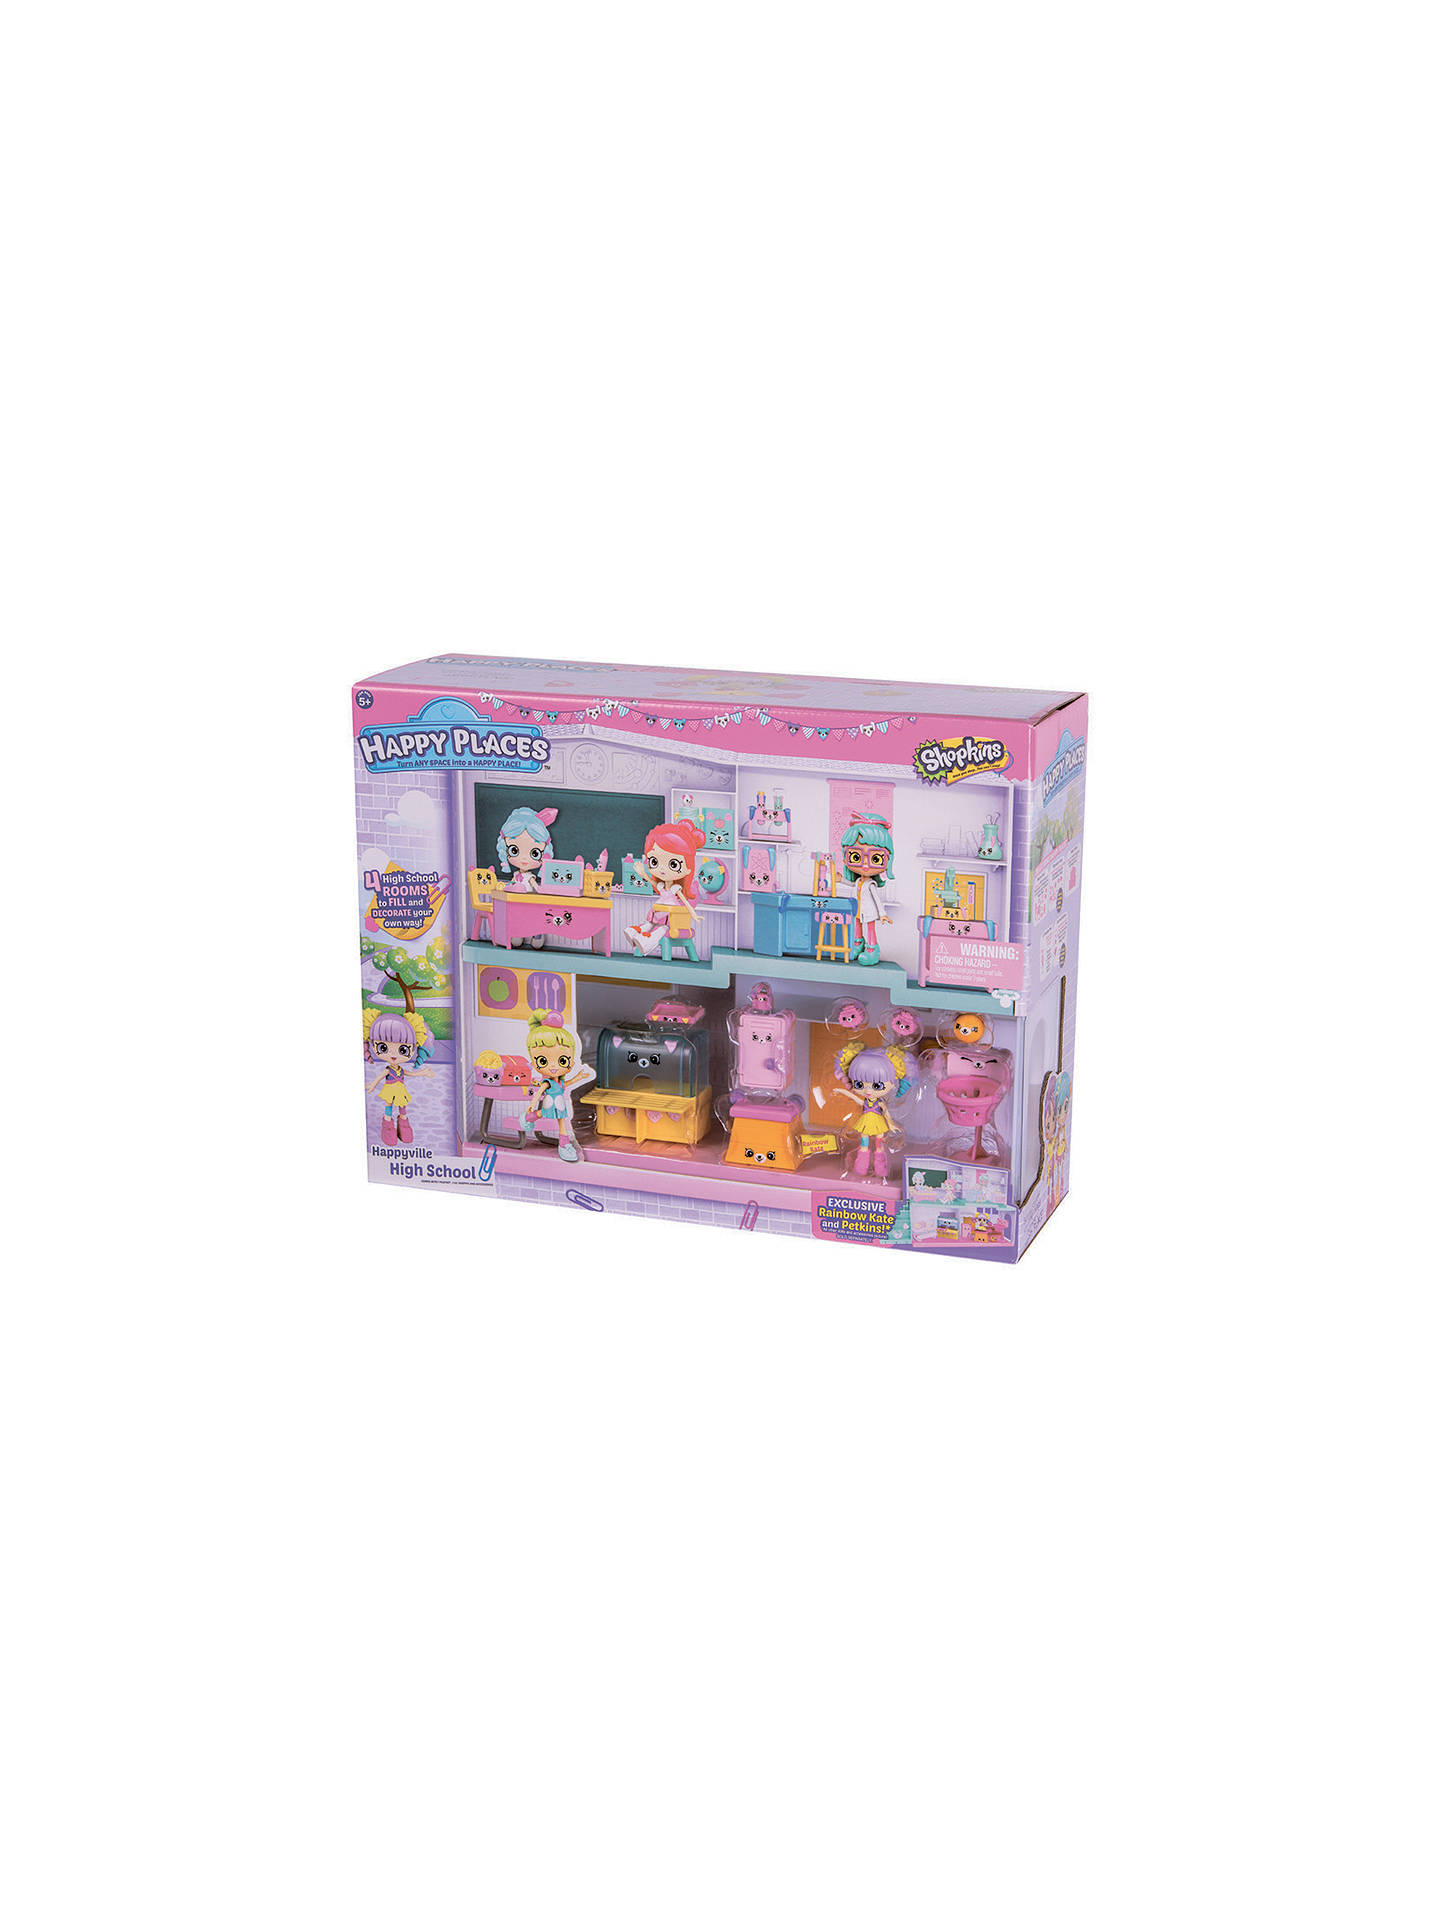 Shopkins Happy Places Happyville High School Playset At John Lewis